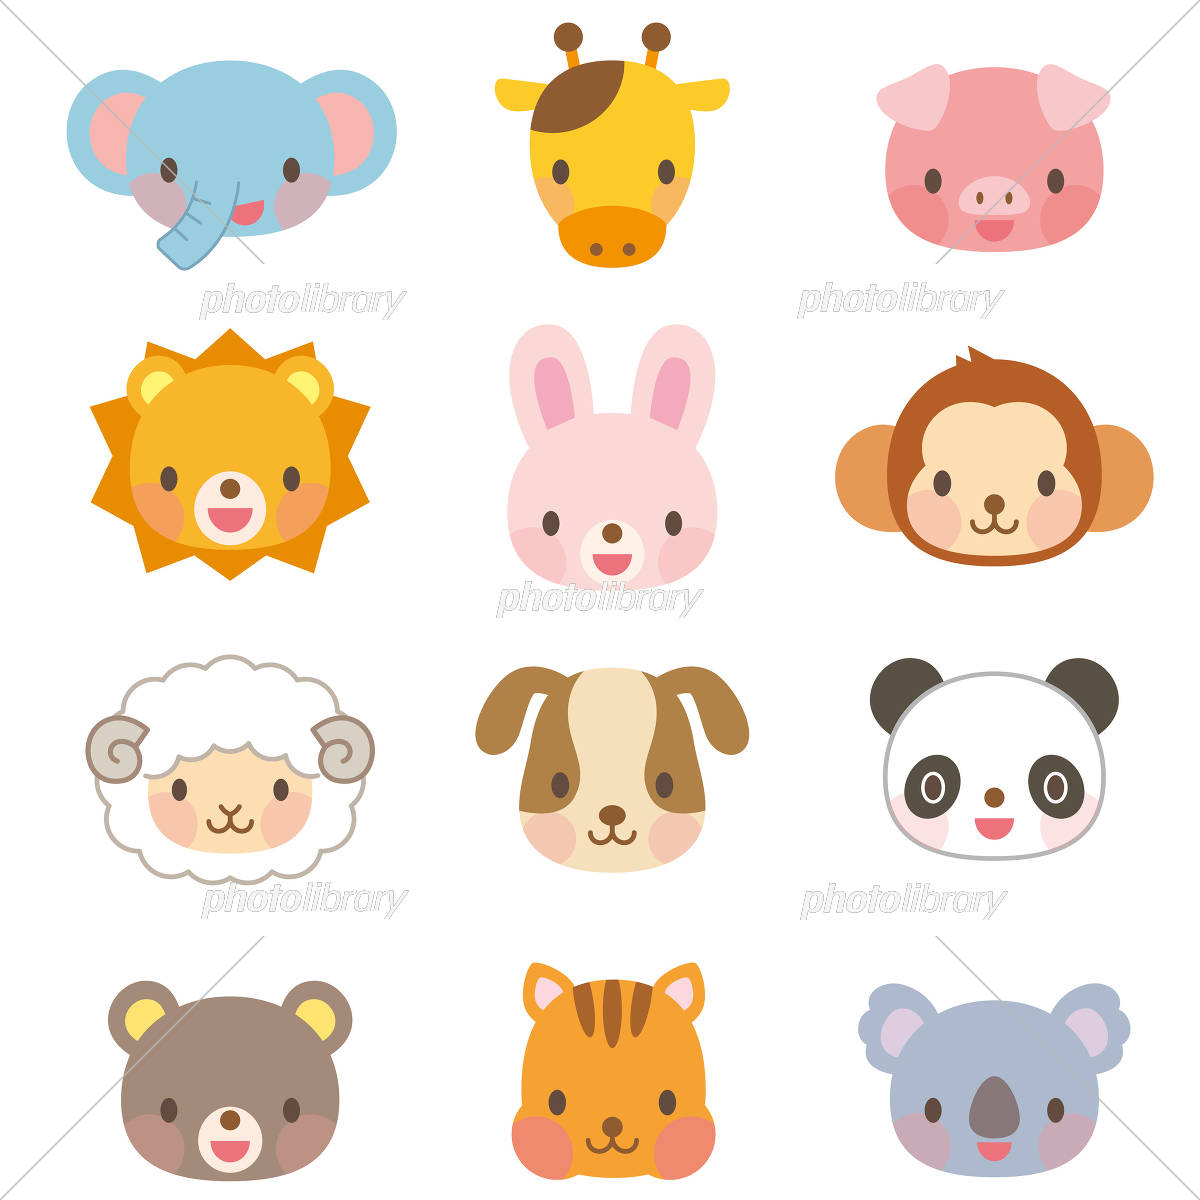 Cute animal illustration set イラスト素材